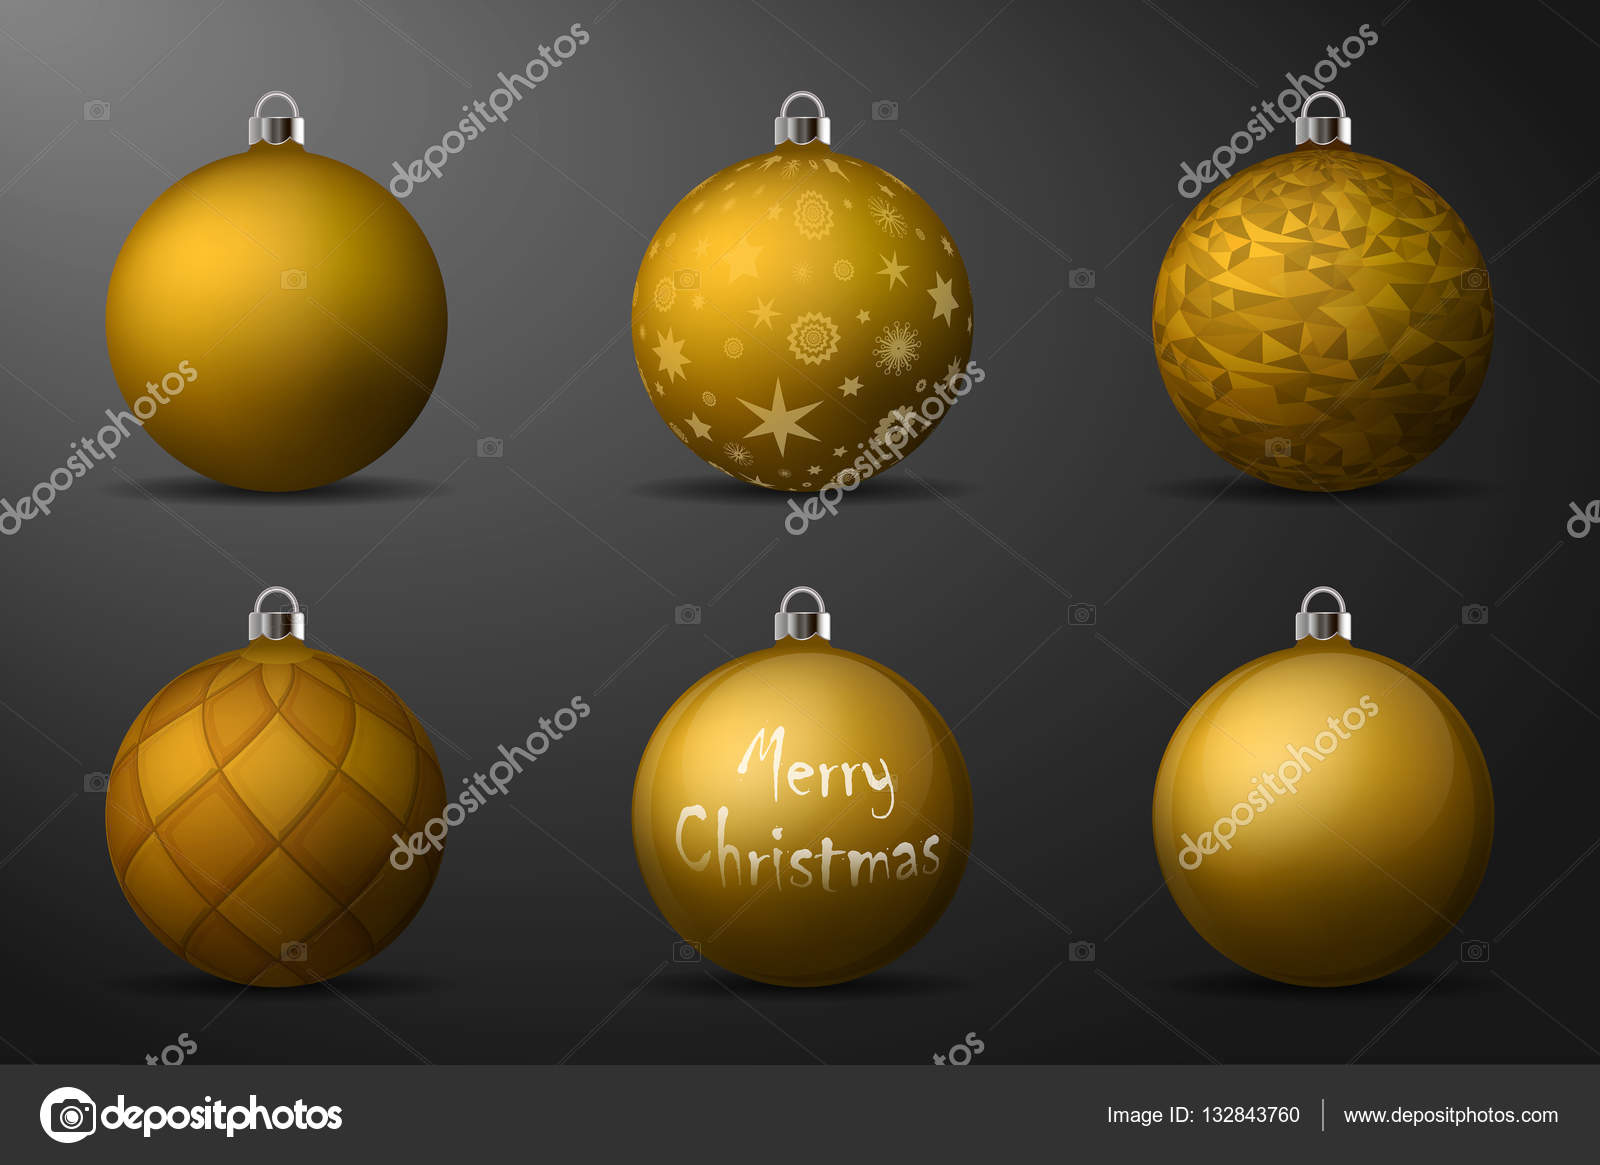 gold christmas balls with silver holders set of isolated realistic decorations on black background - Black And Gold Christmas Ornaments